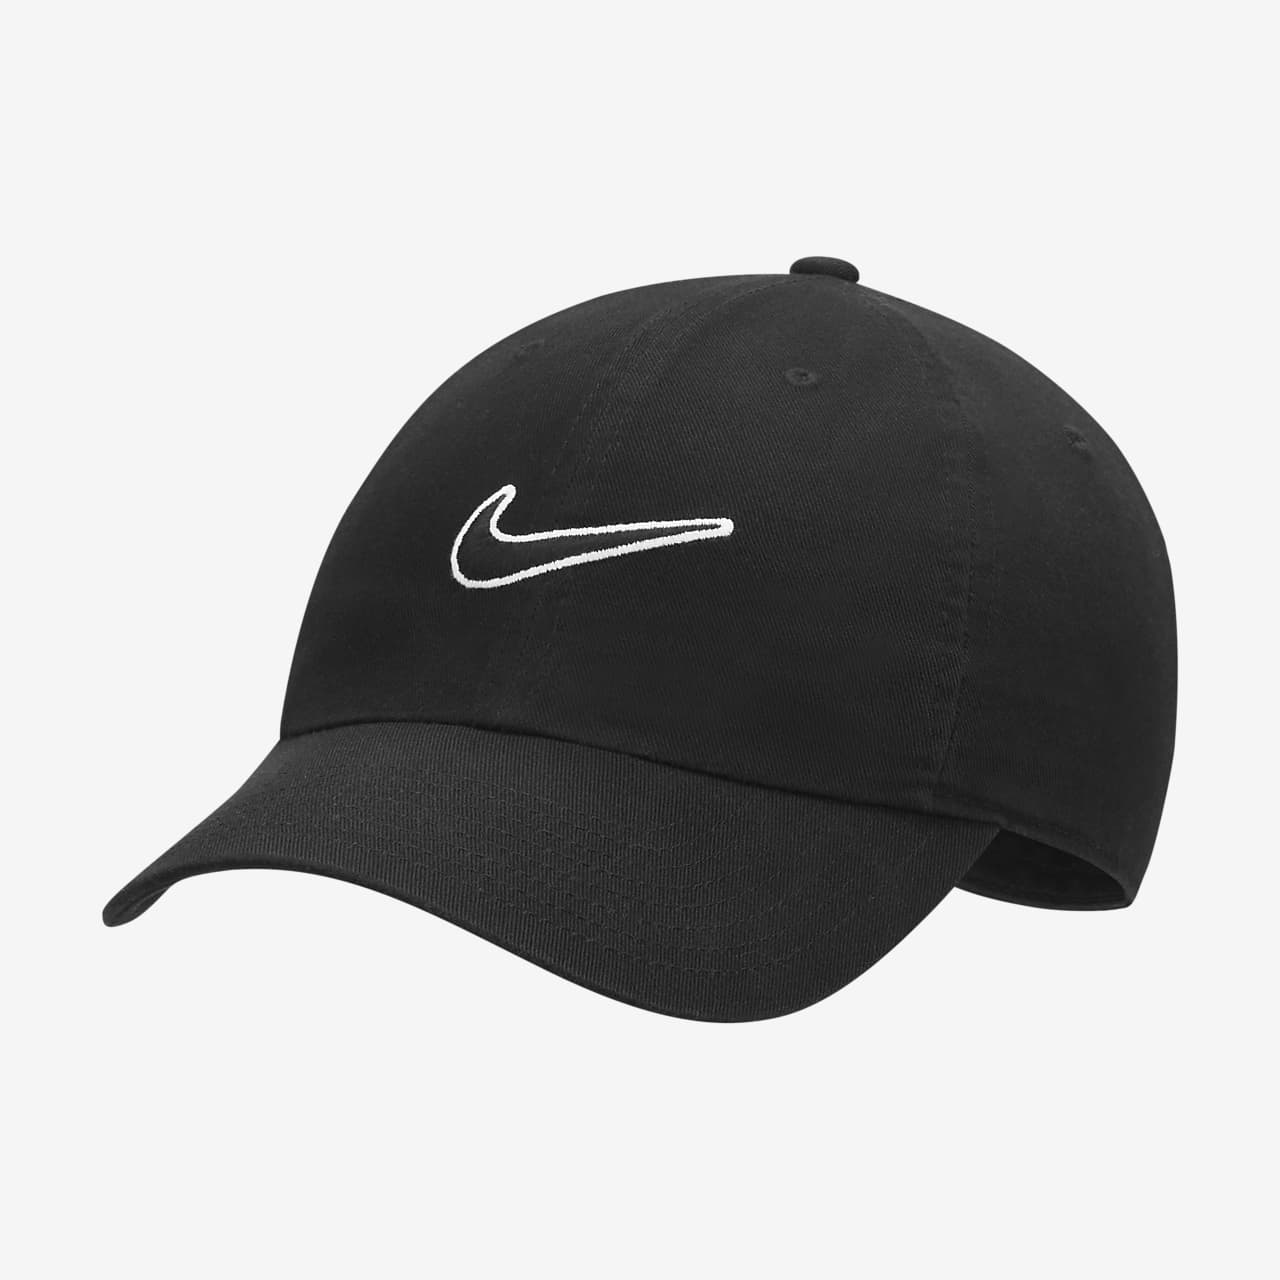 f0c17a92 Nike Heritage 86 Essential Swoosh Adjustable Hat. Nike.com GB